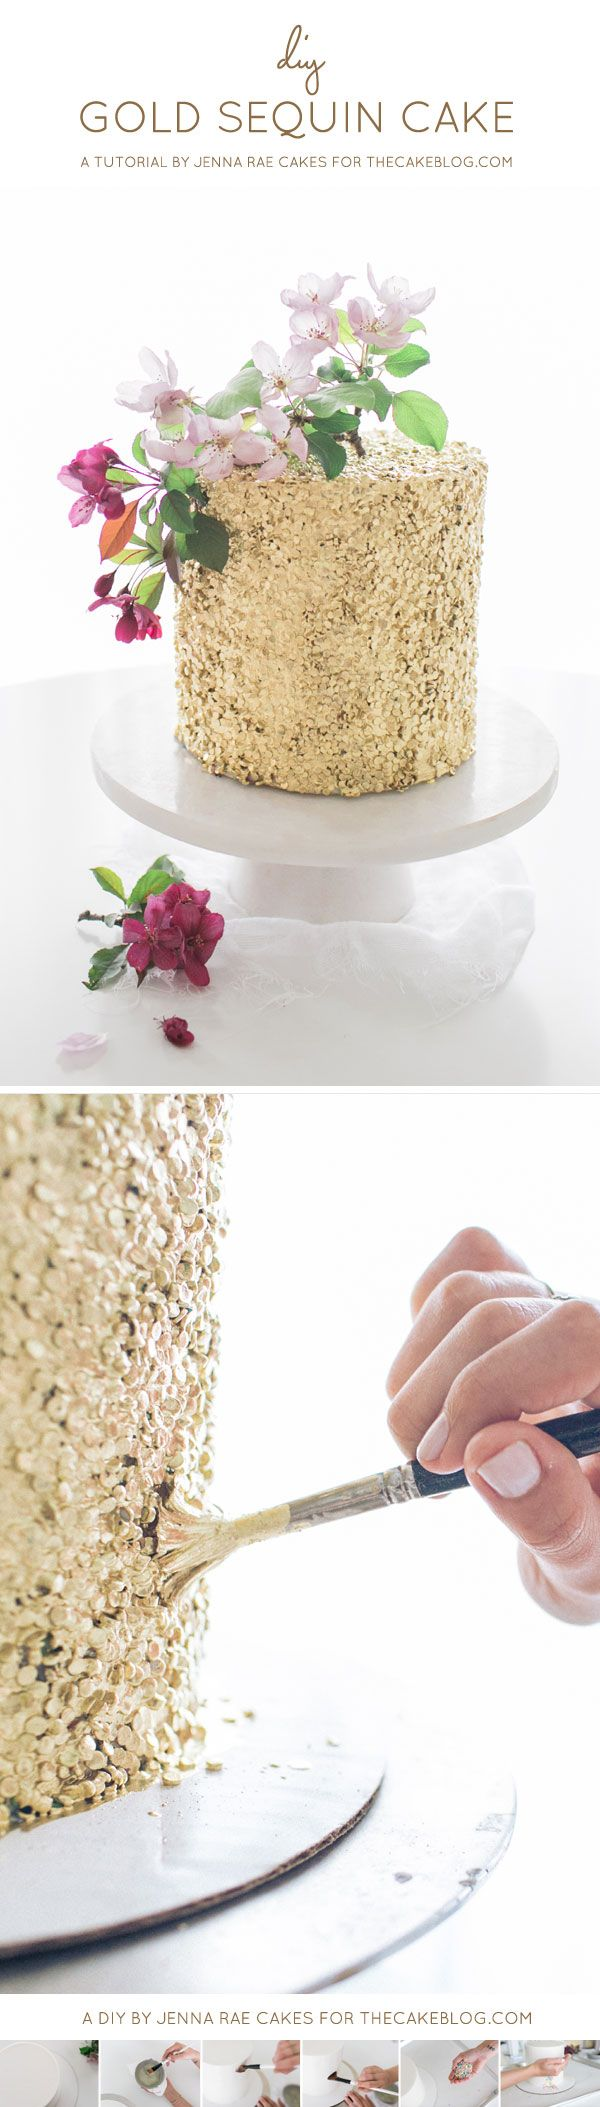 How to make a Gold Sequin Cake | Metallic Sequin Cake Tutorial | by Jenna Rae Cakes for TheCakeBlog.com >> This is awesome! Will have to try this.